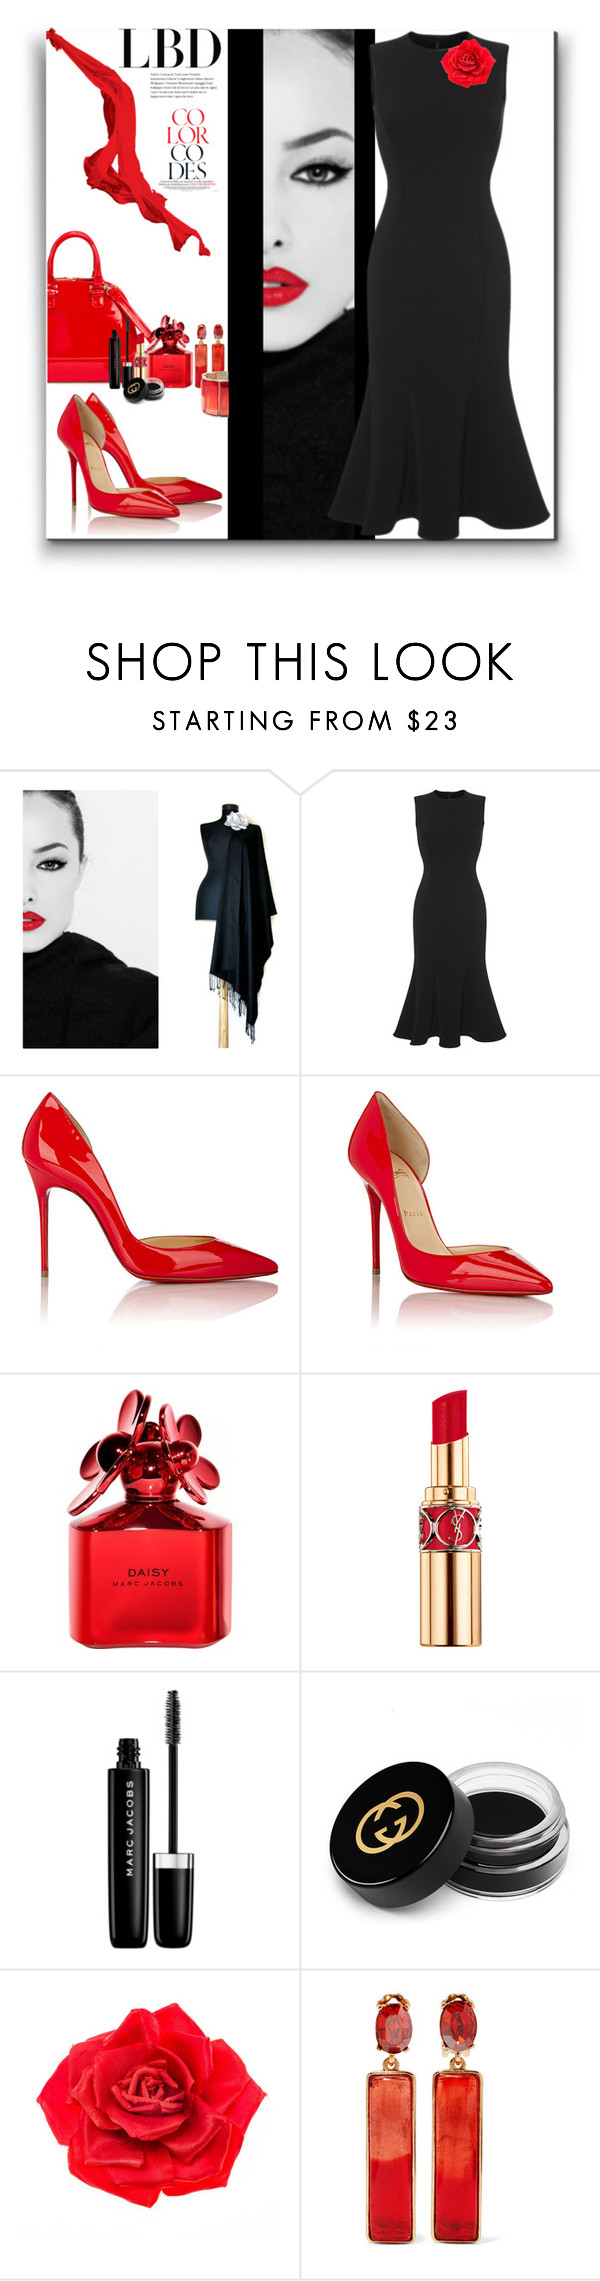 """LBD"" by marionmeyer ❤ liked on Polyvore featuring Dolce&Gabbana, Christian Louboutin, Marc Jacobs, Yves Saint Laurent, Gucci, Johnny Loves Rosie, Oscar de la Renta and LBD"